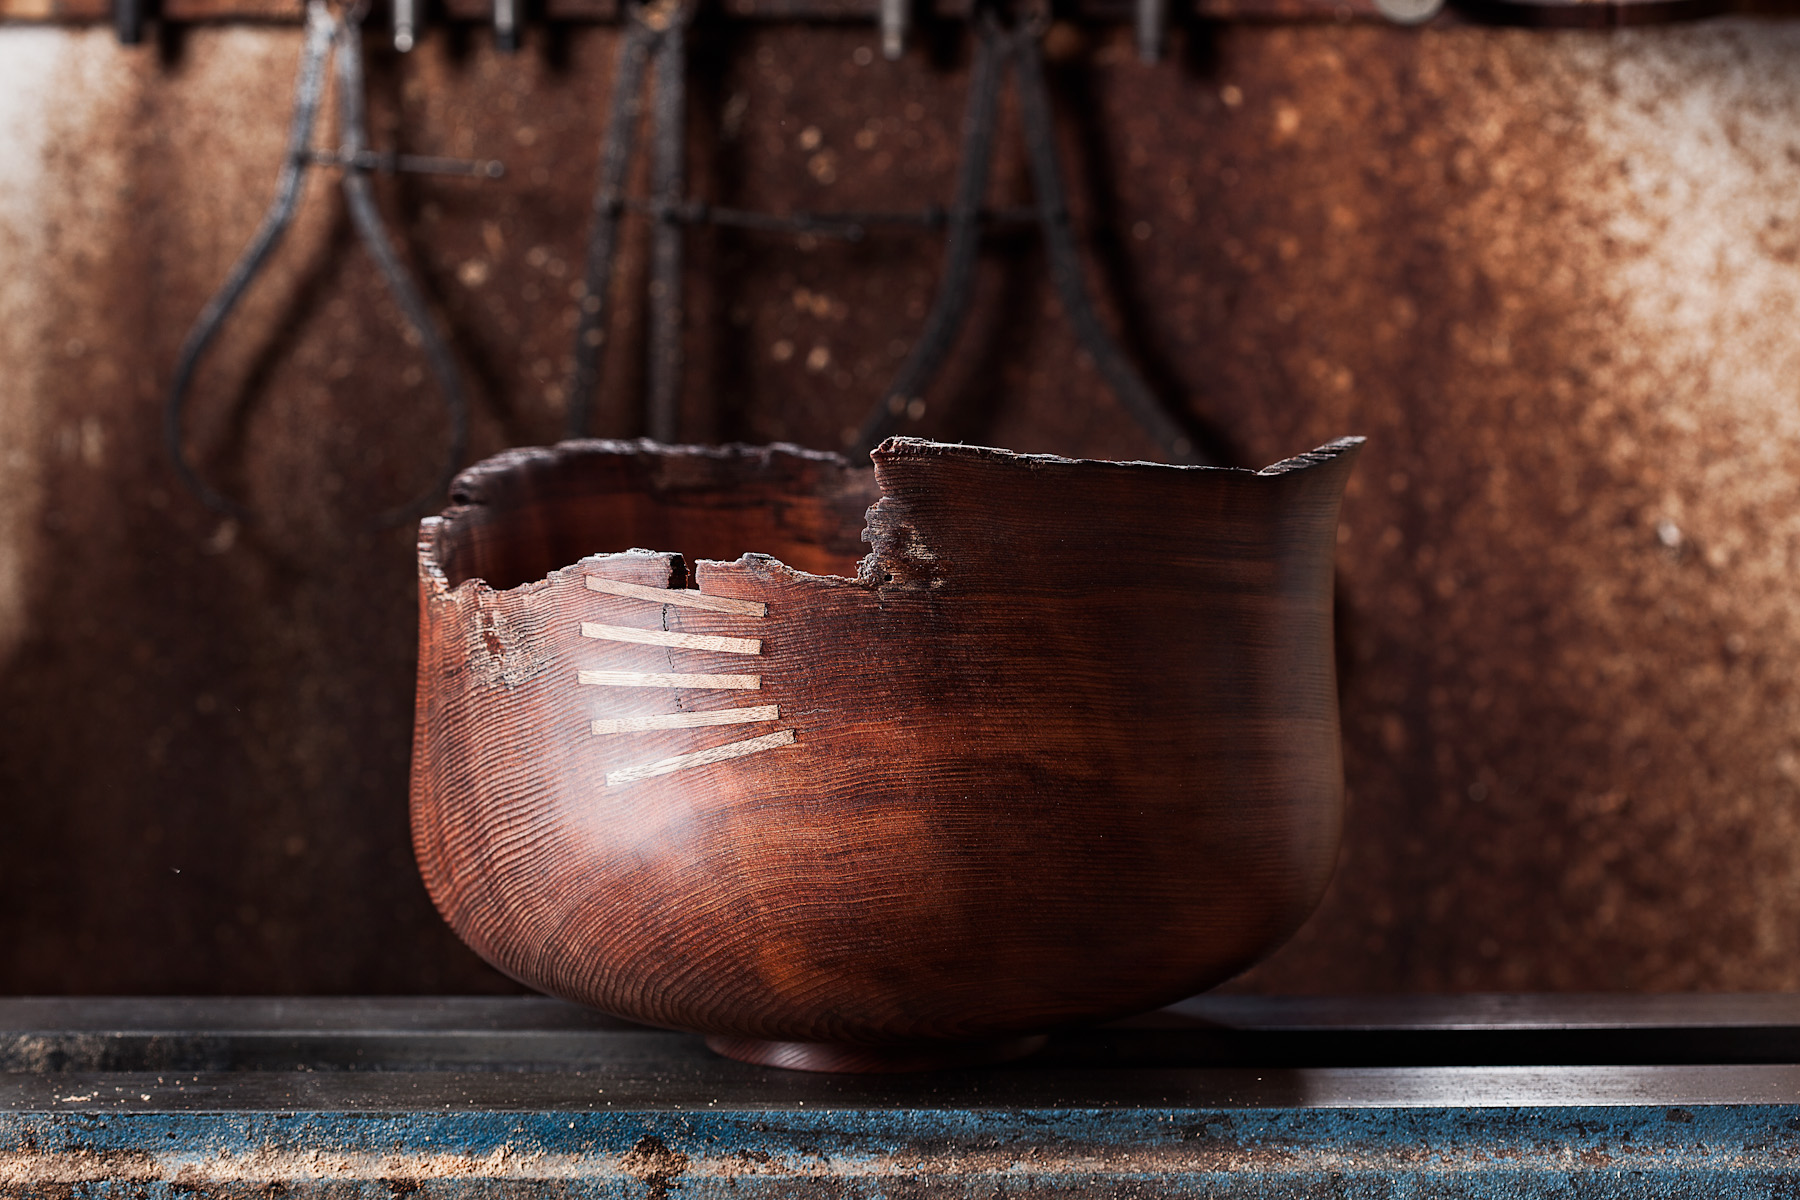 Jerry Kermode spins wood bowls out of Sebastopol